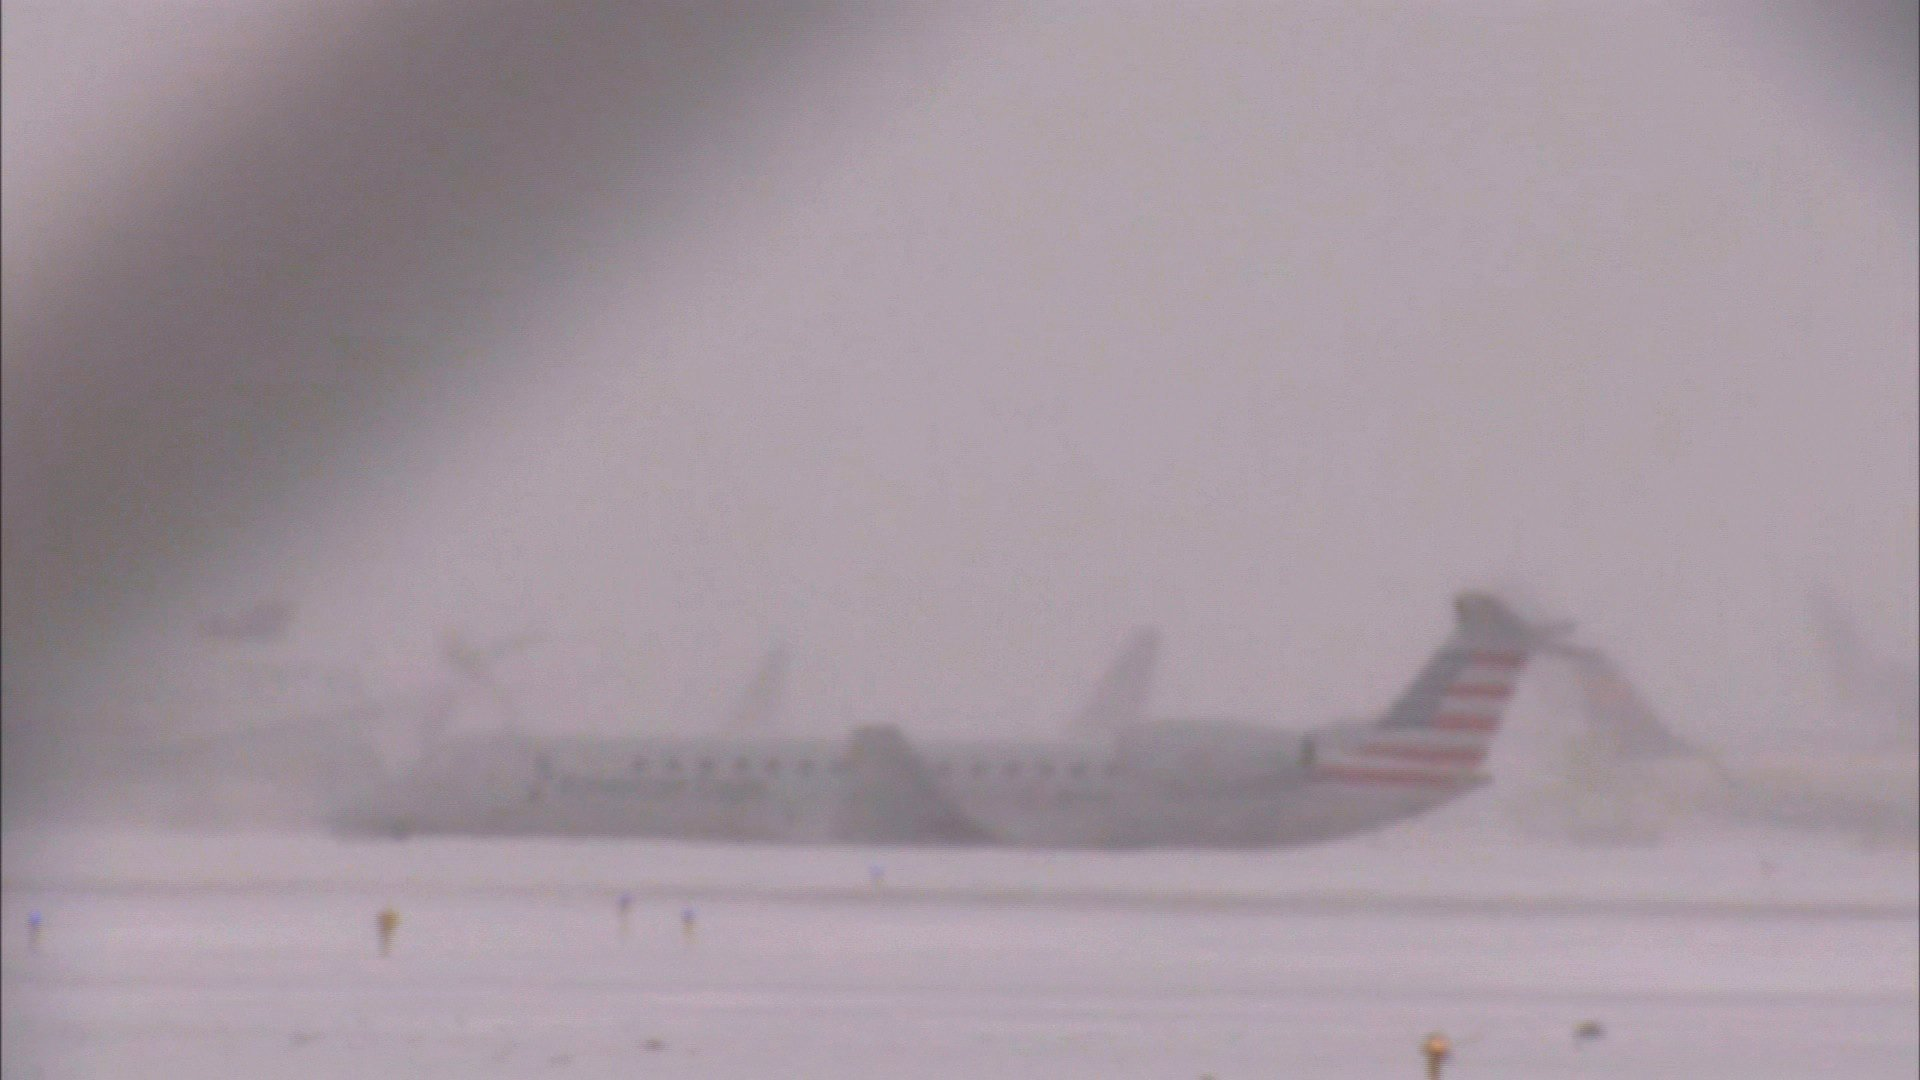 Plane slides off snowy runway at Chicago's O'Hare International Airport